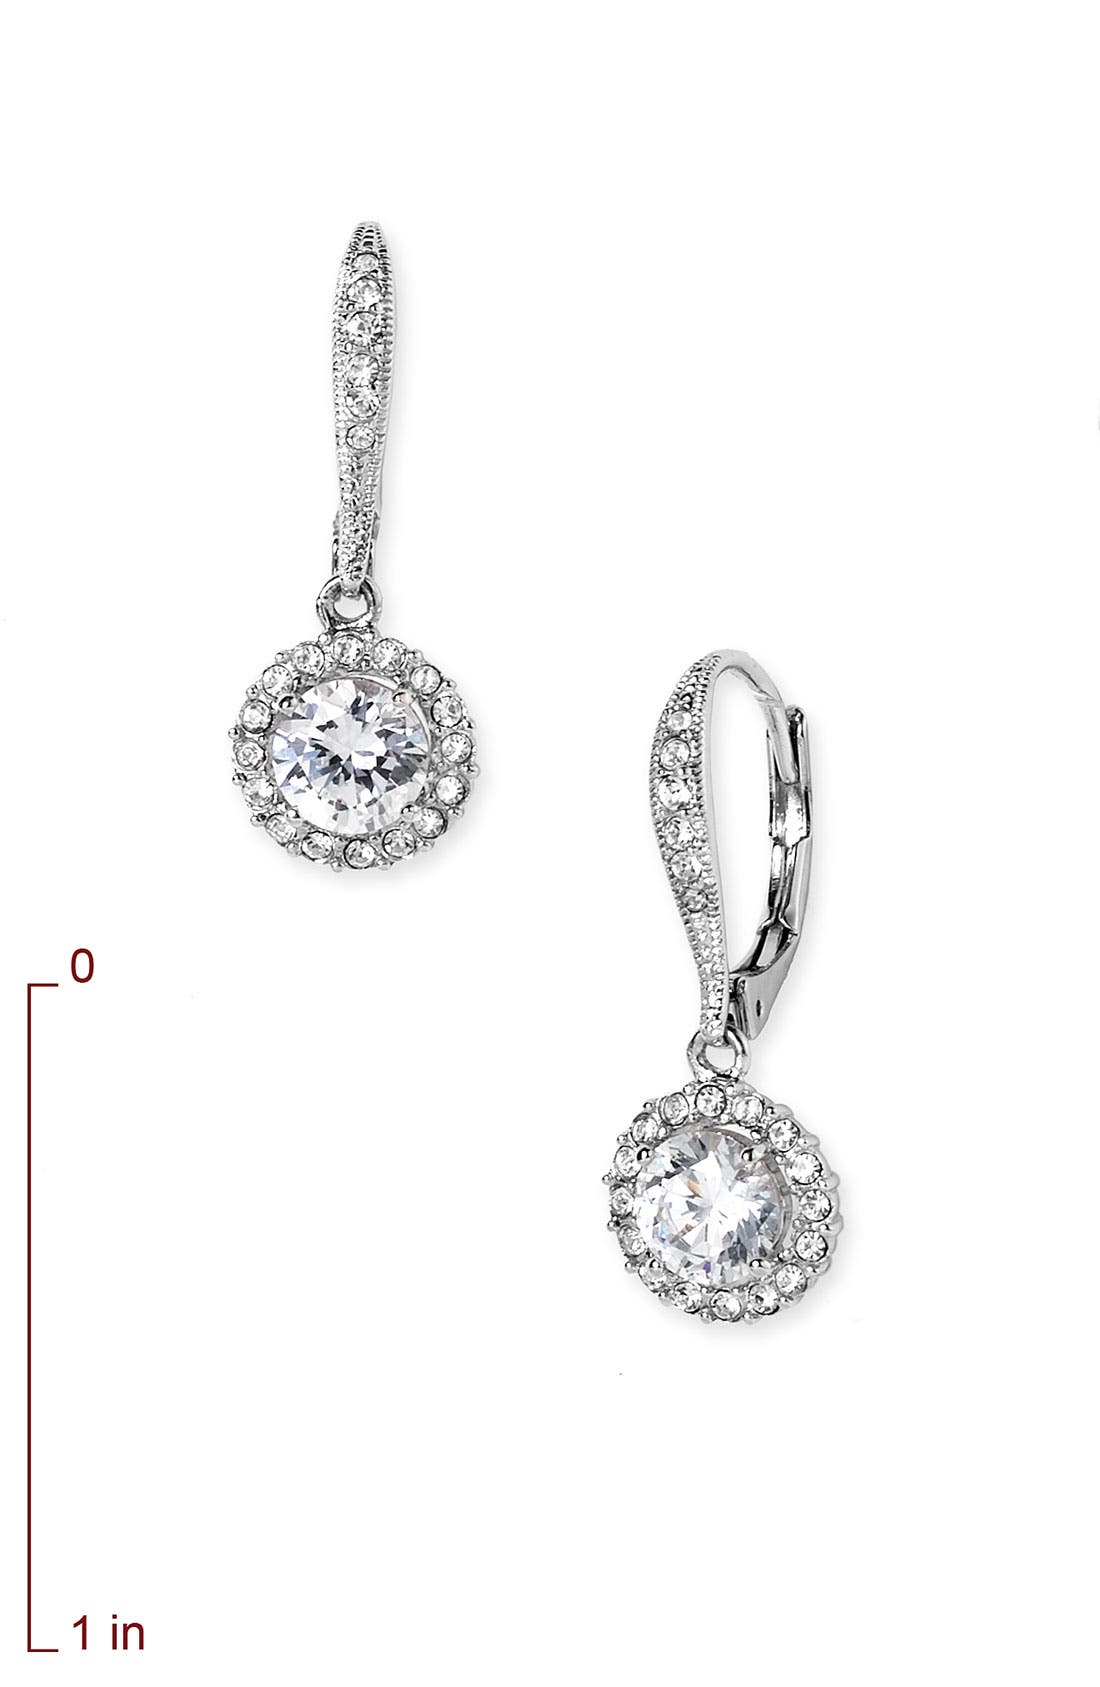 Cubic Zirconia Drop Earrings,                             Alternate thumbnail 3, color,                             SILVER/ CLEAR CRYSTAL